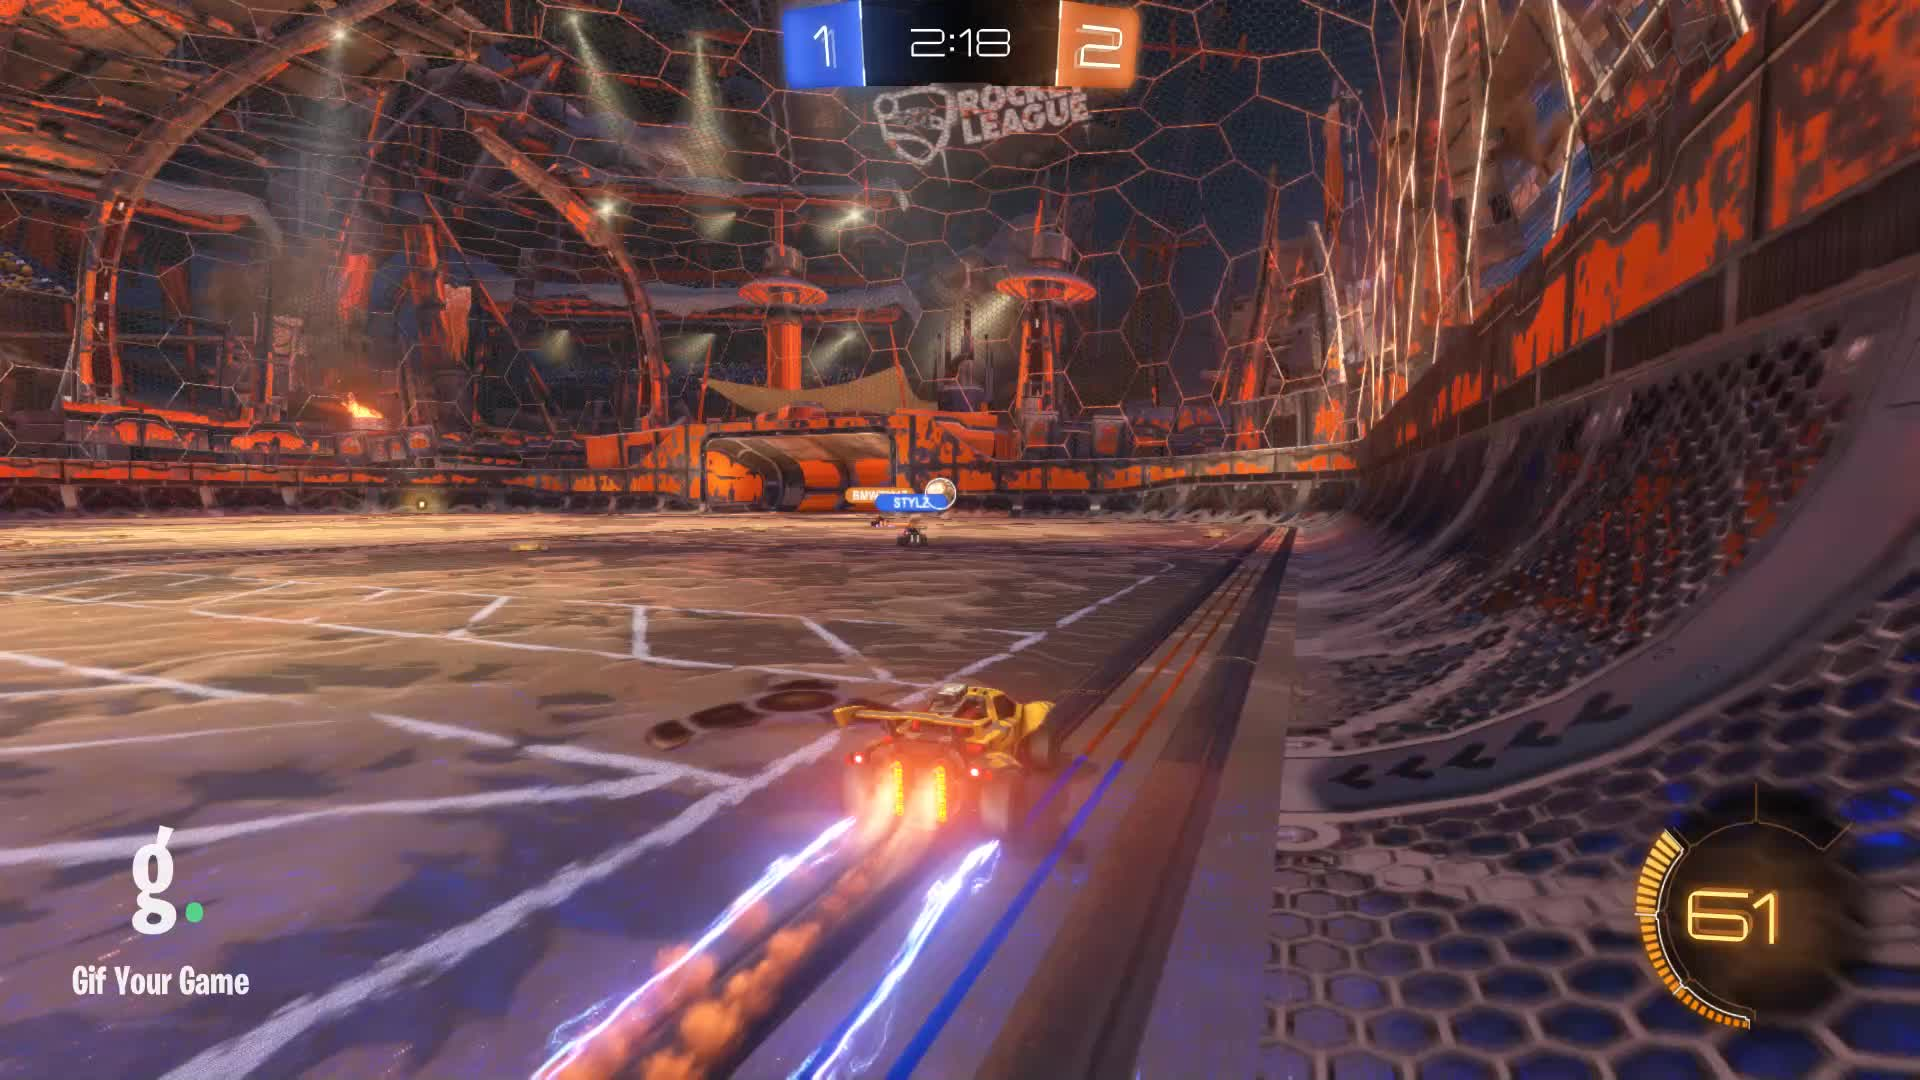 Gif Your Game, GifYourGame, Rocket League, RocketLeague, datboi   CLS, Save 4: datboi   CLS GIFs